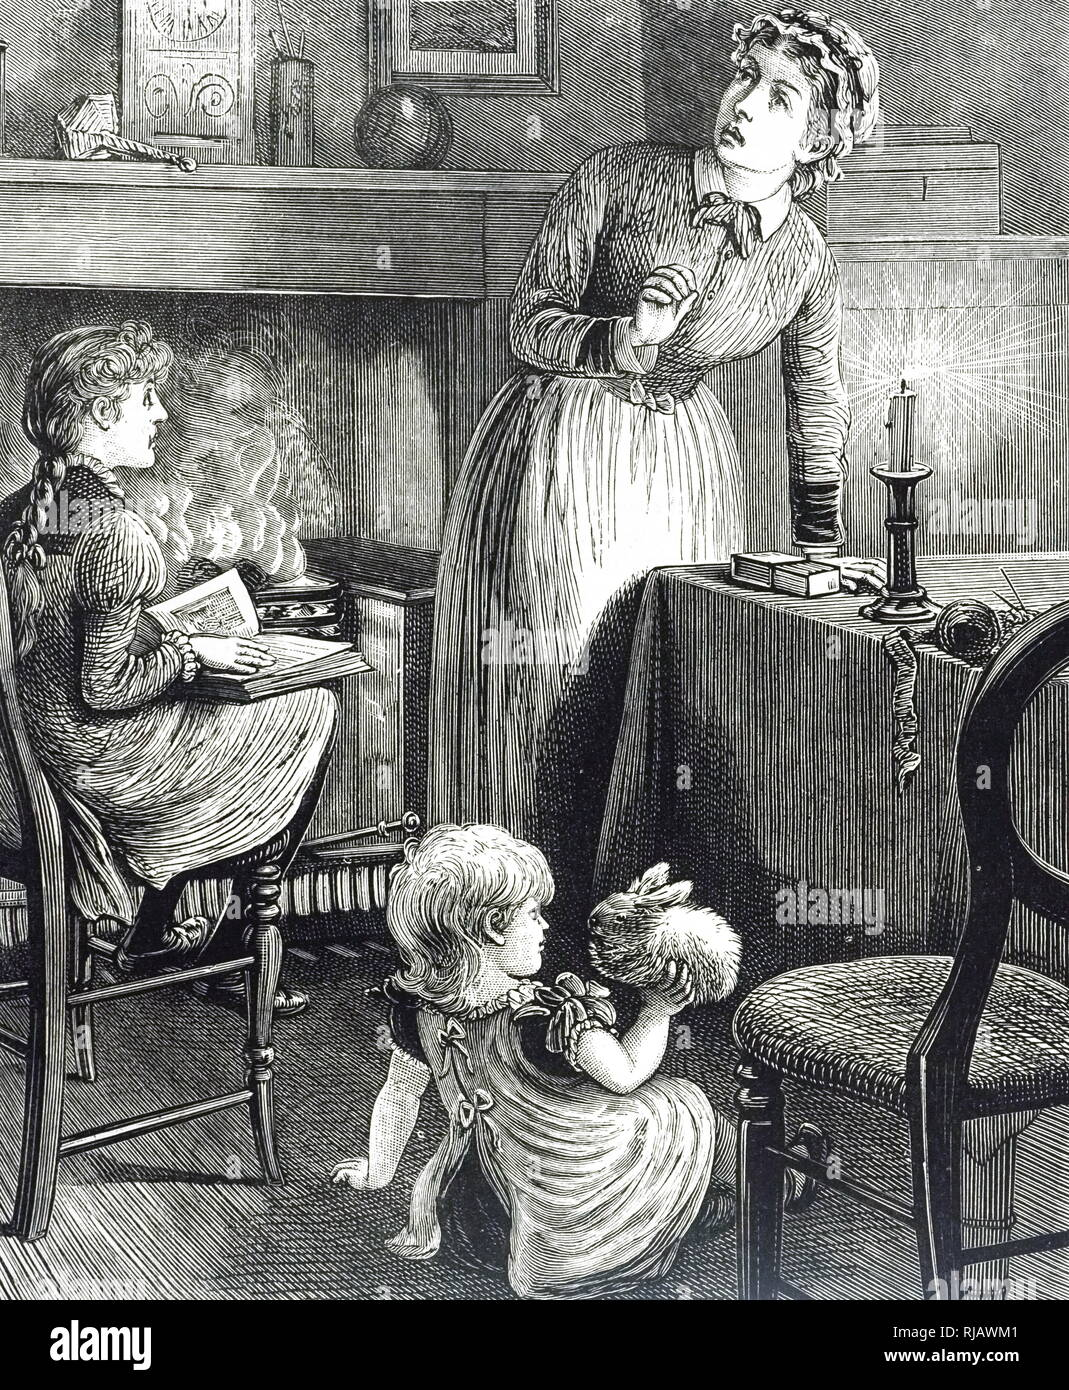 An engraving depicting a nursery maid and her charges. A box of matches is by the candlestick on the table. Dated 19th century Stock Photo